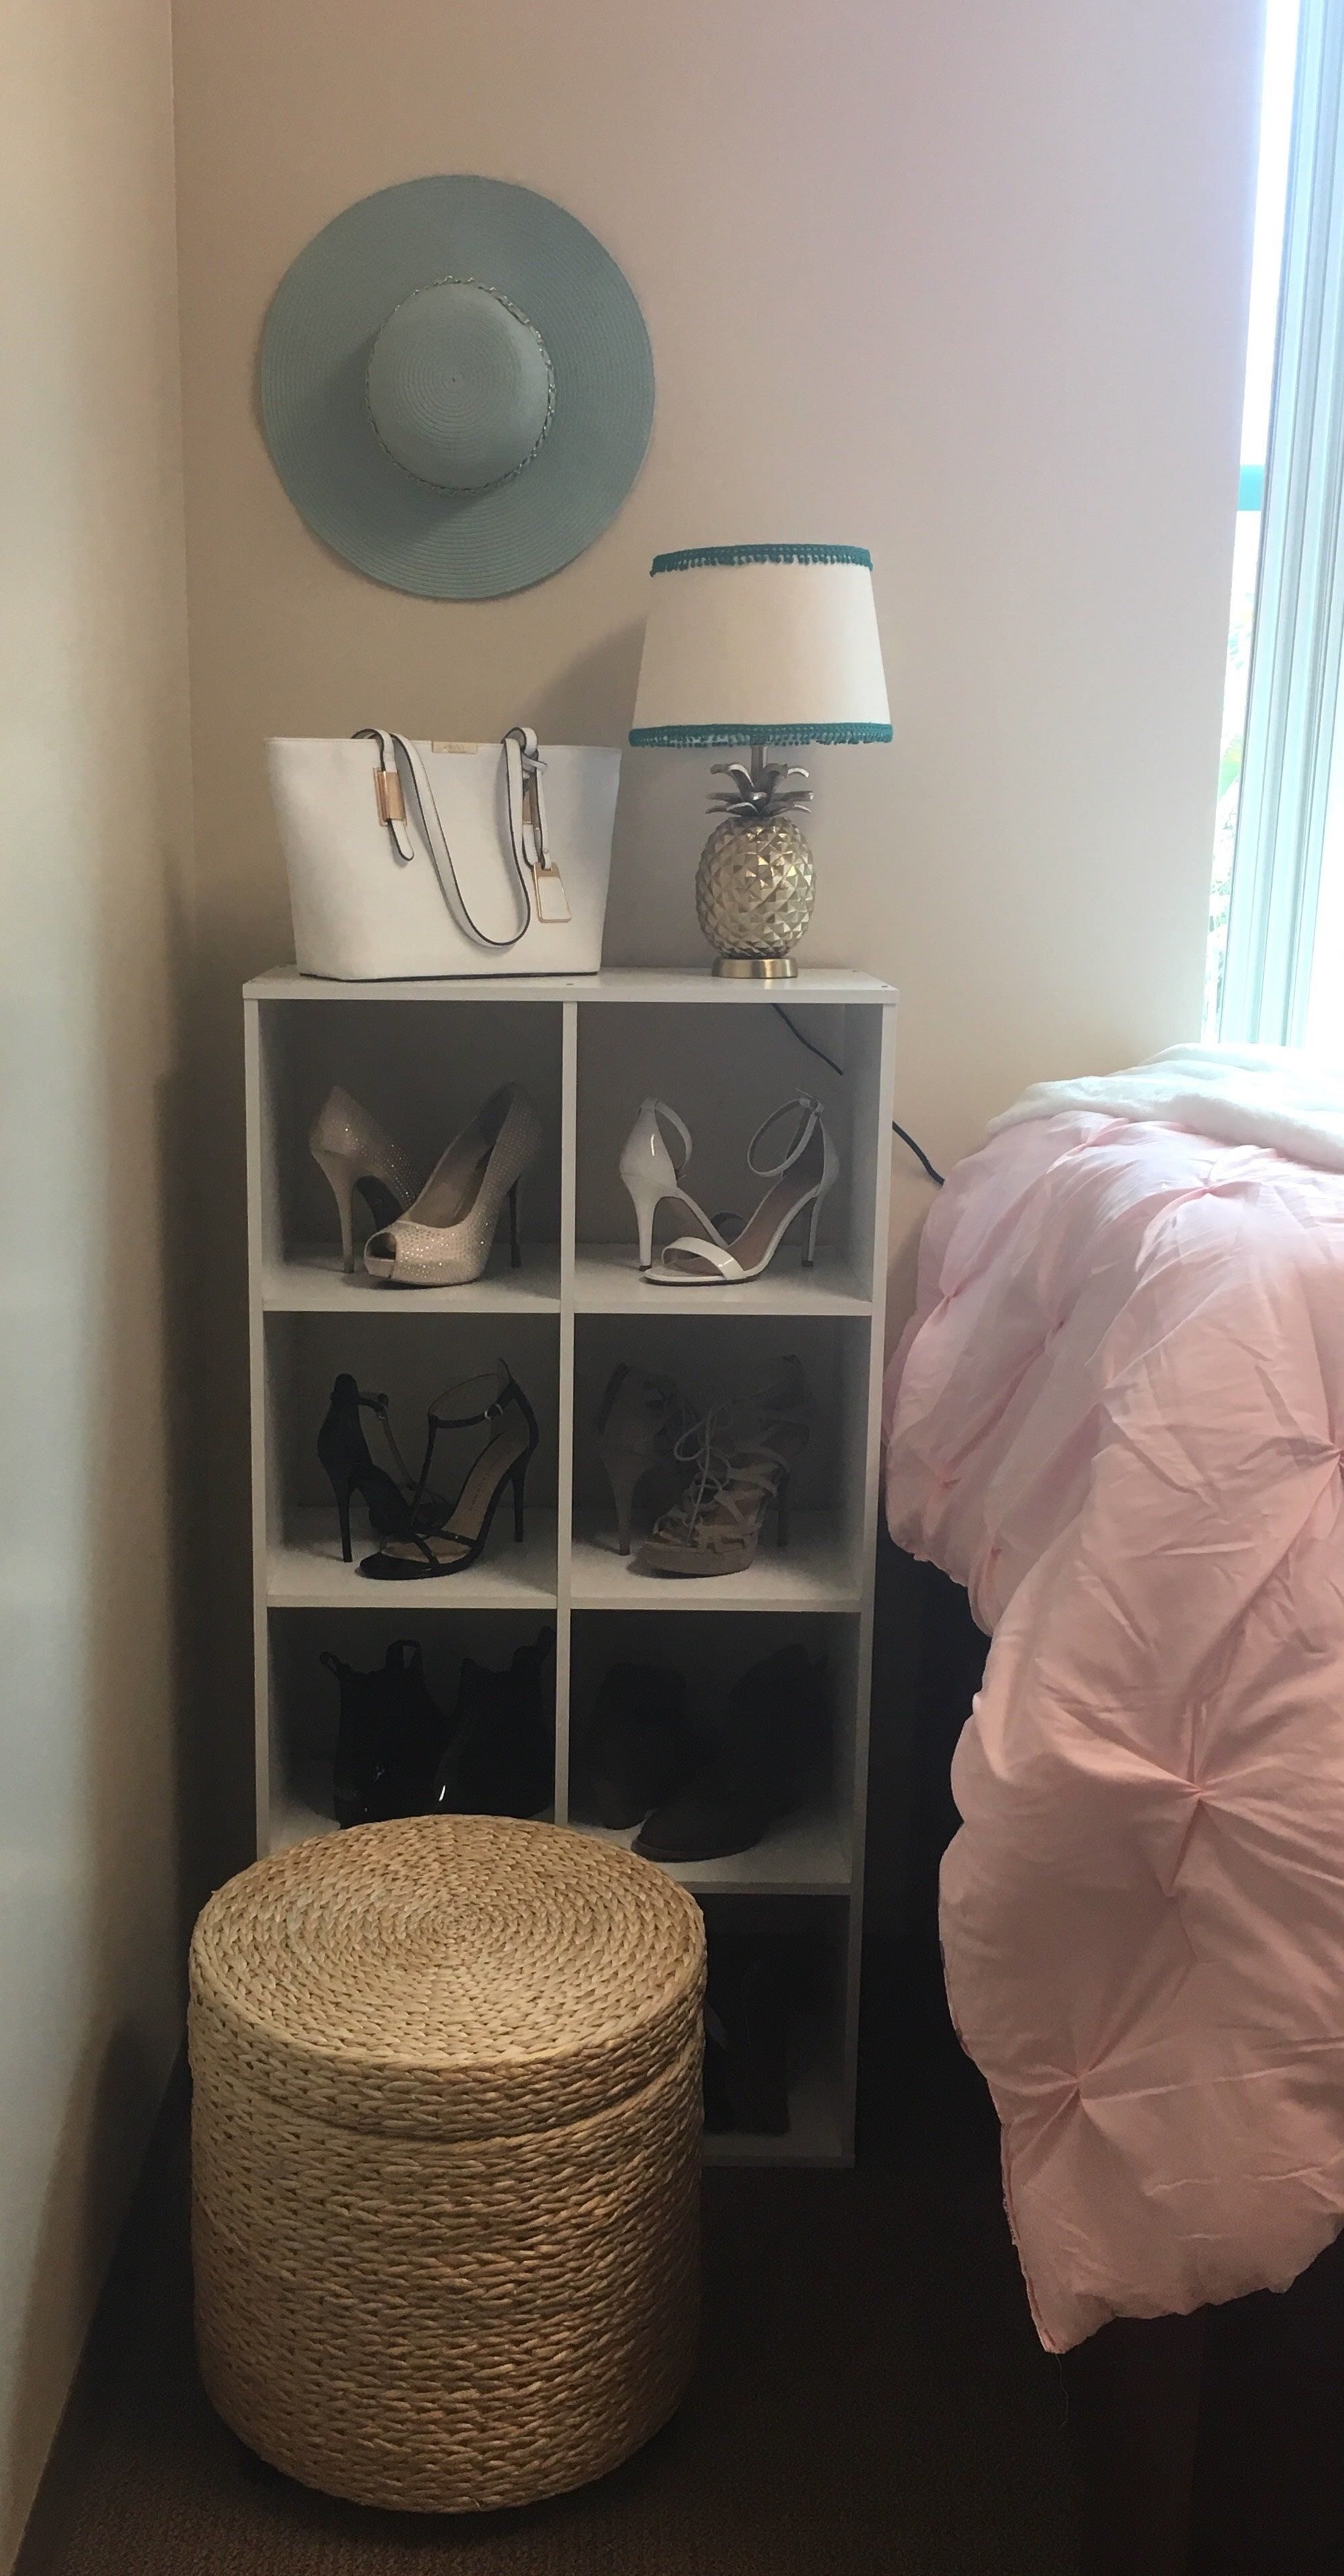 Dorm Room Furniture: This Neptune Resident Brought Her Own Furniture Piece To